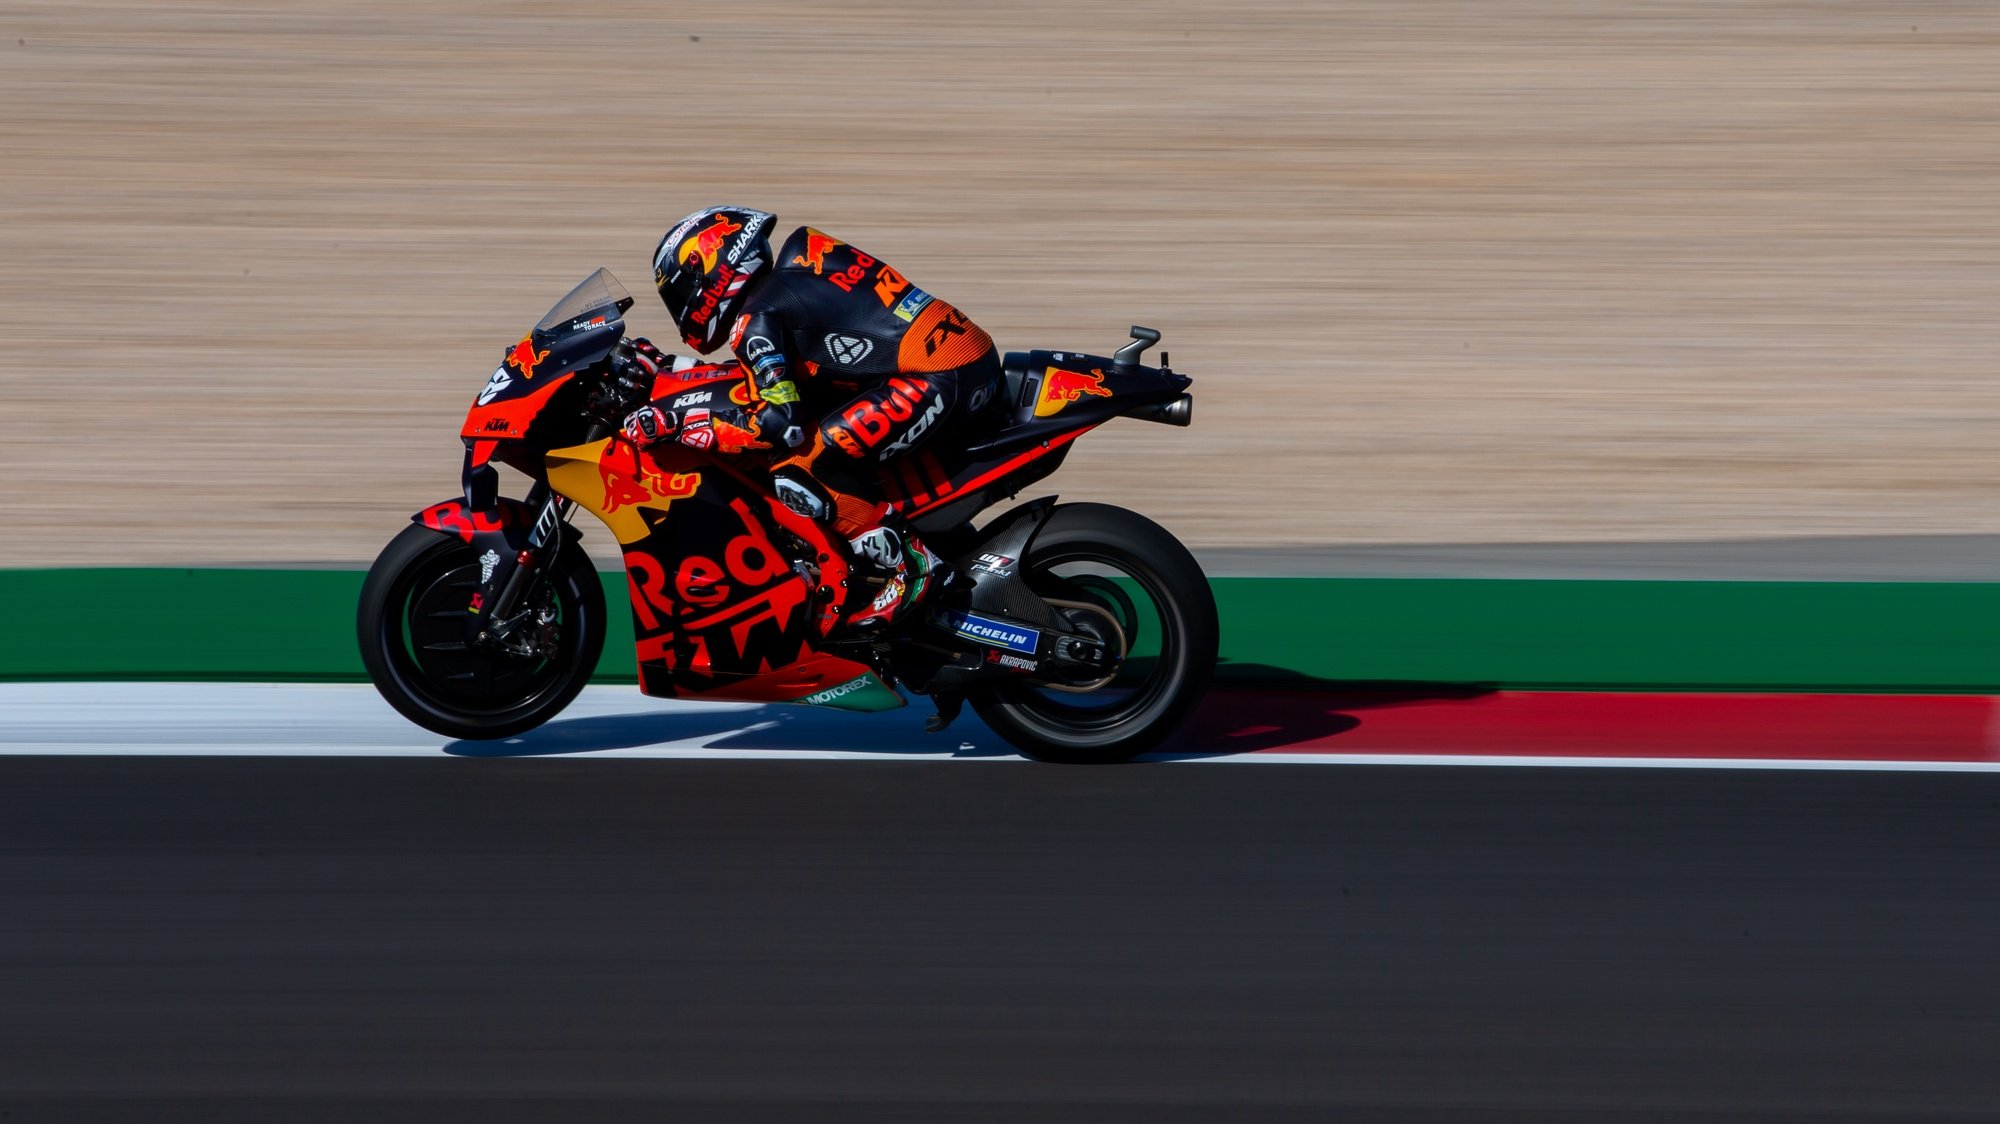 Portuguese rider of Red Bull KTM Factory Racing team, Miguel Oliveira, in action during the warm up session for the Grand Prix of Portugal at Algarve International race track, south of Portugal, 18 April 2021. JOSE SENA GOULAO/LUSA